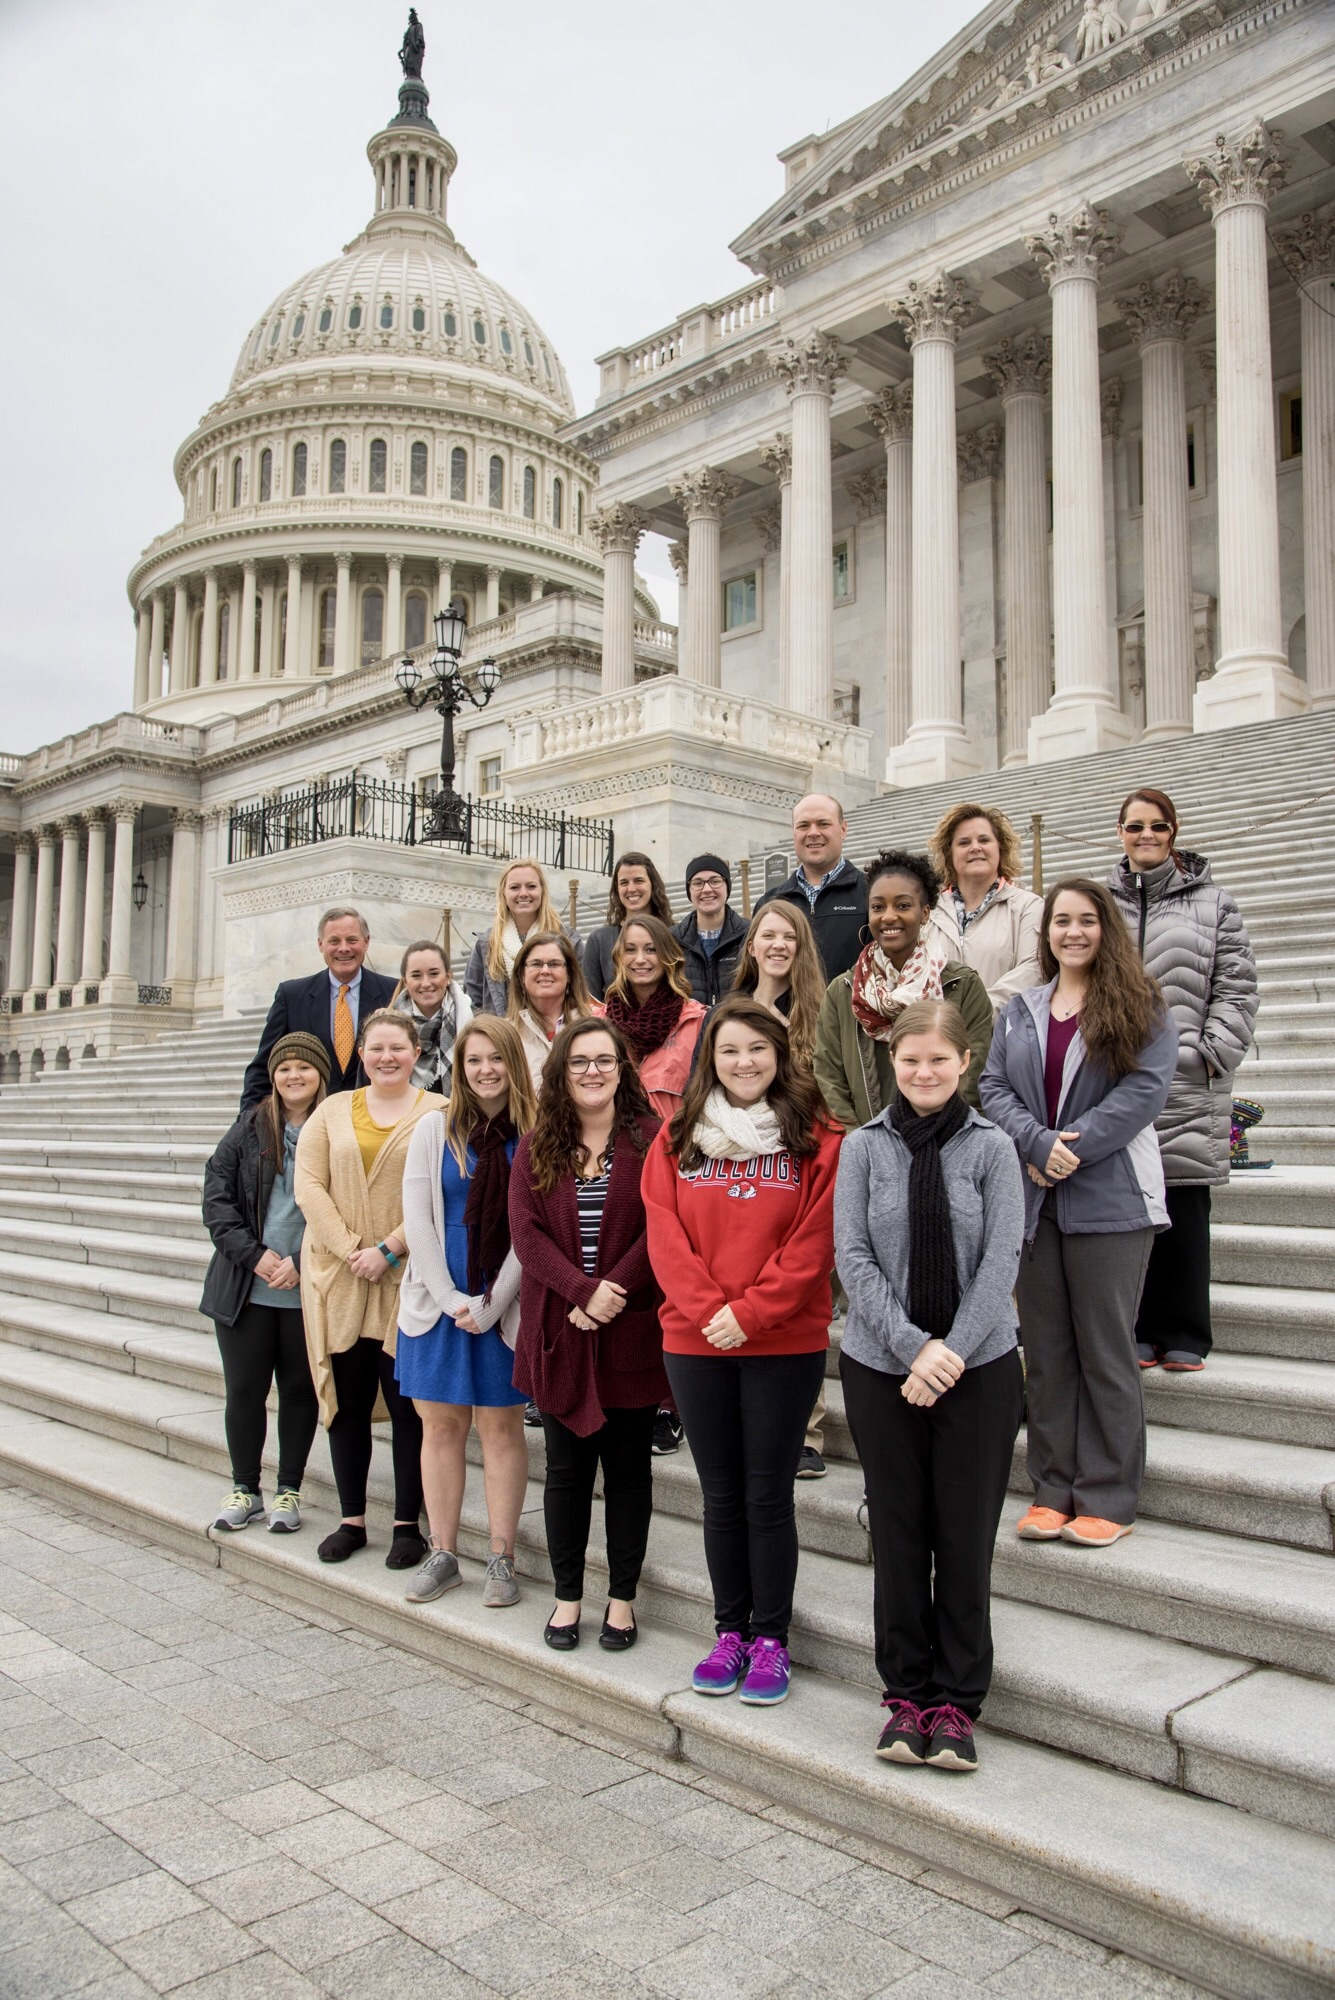 GWU SNCAE, a group of student teachers, took on Washington, D.C. my sophomore year. We toured the Capitol, memorials, museums, and I had the opportunity to do this alongside great people.